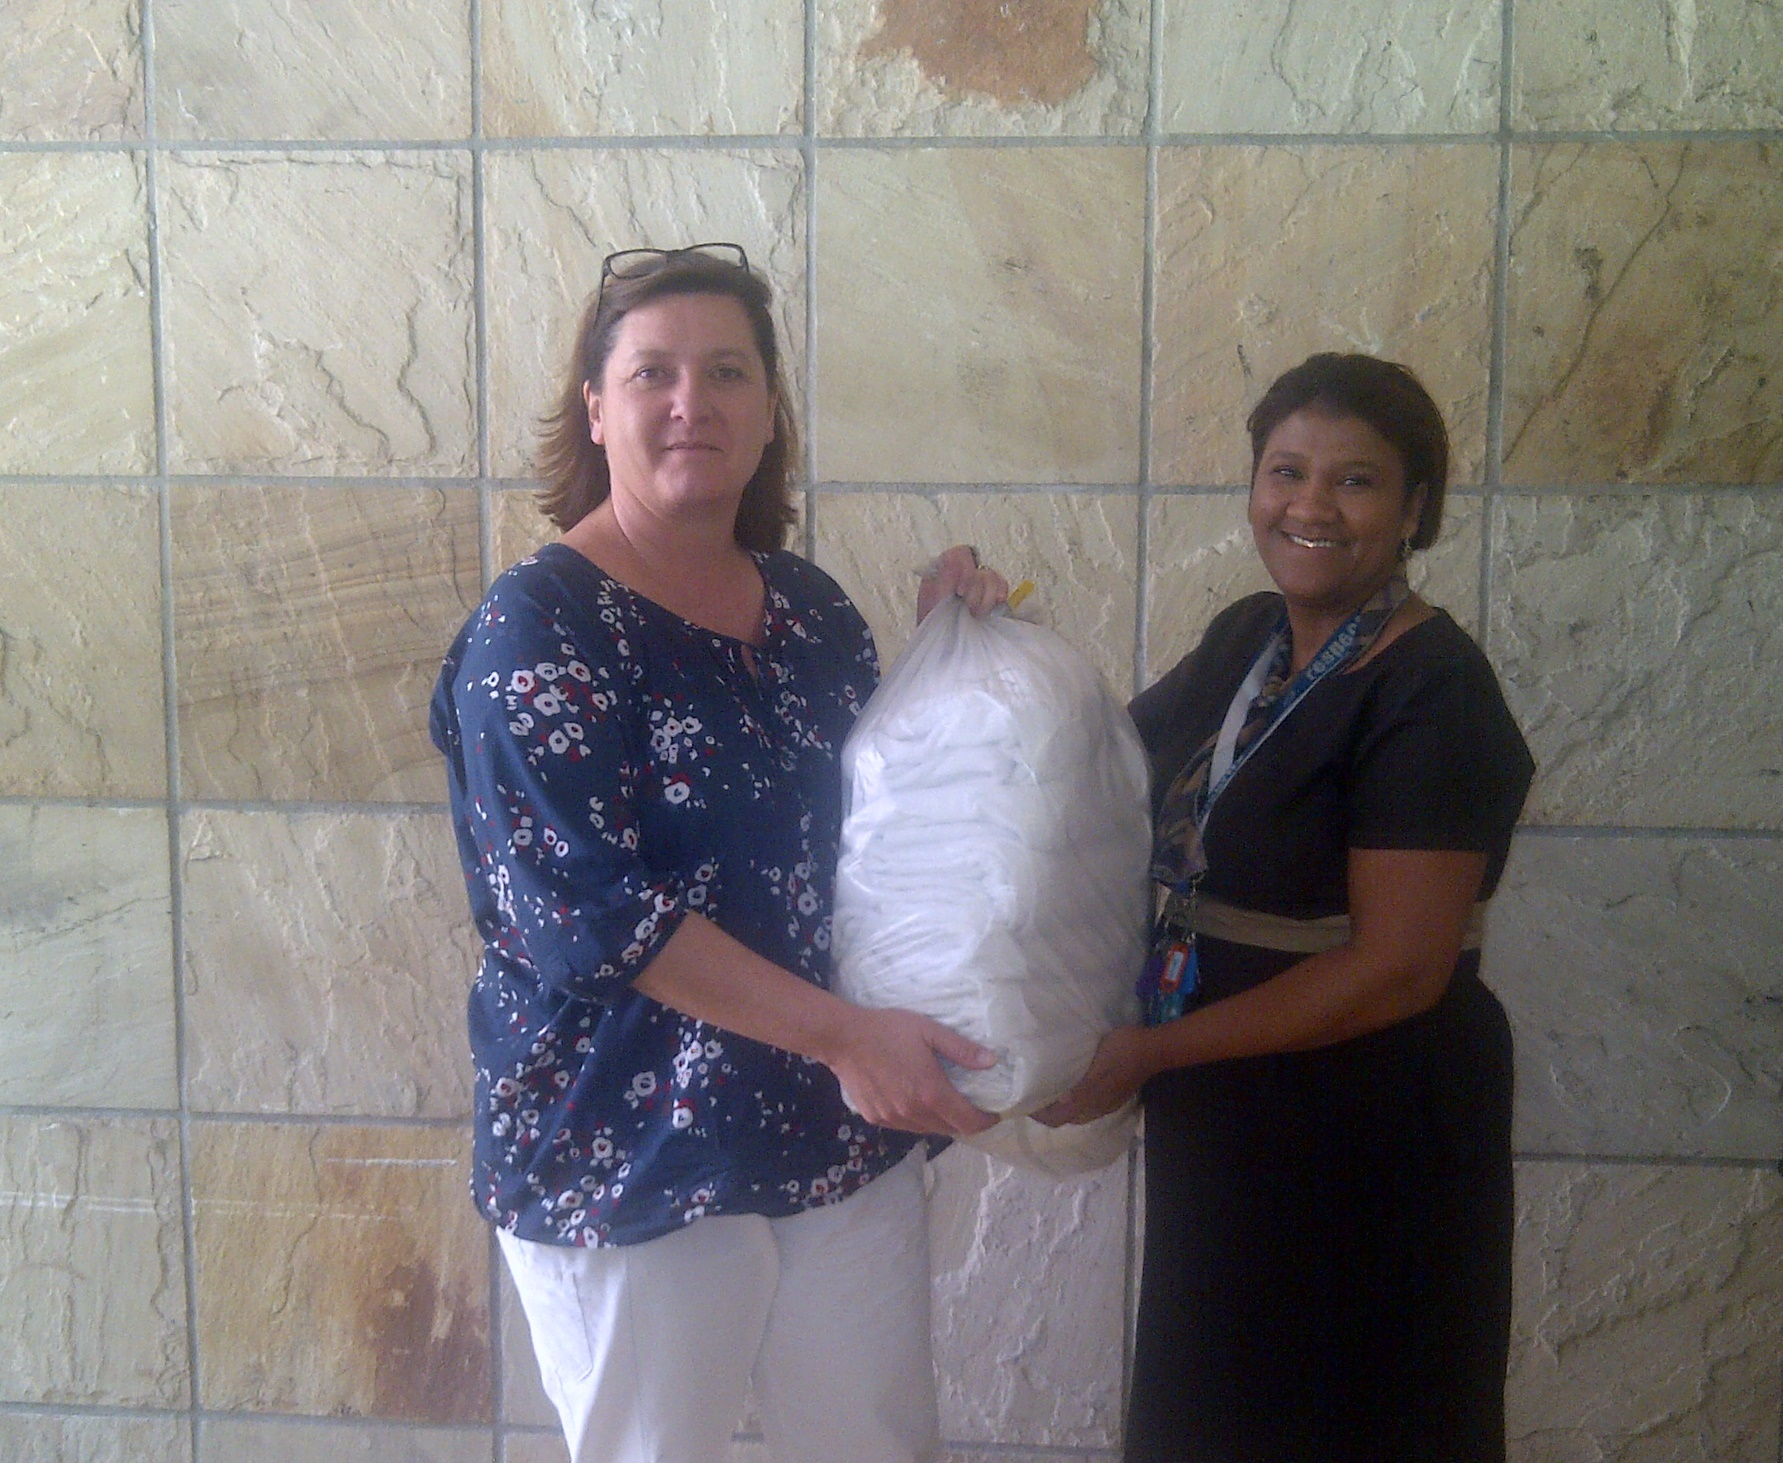 Head of Donor Support, Alison Smith, receives one of the bundles of towels from Natasha Engel, Linen Keeper at the hotel.